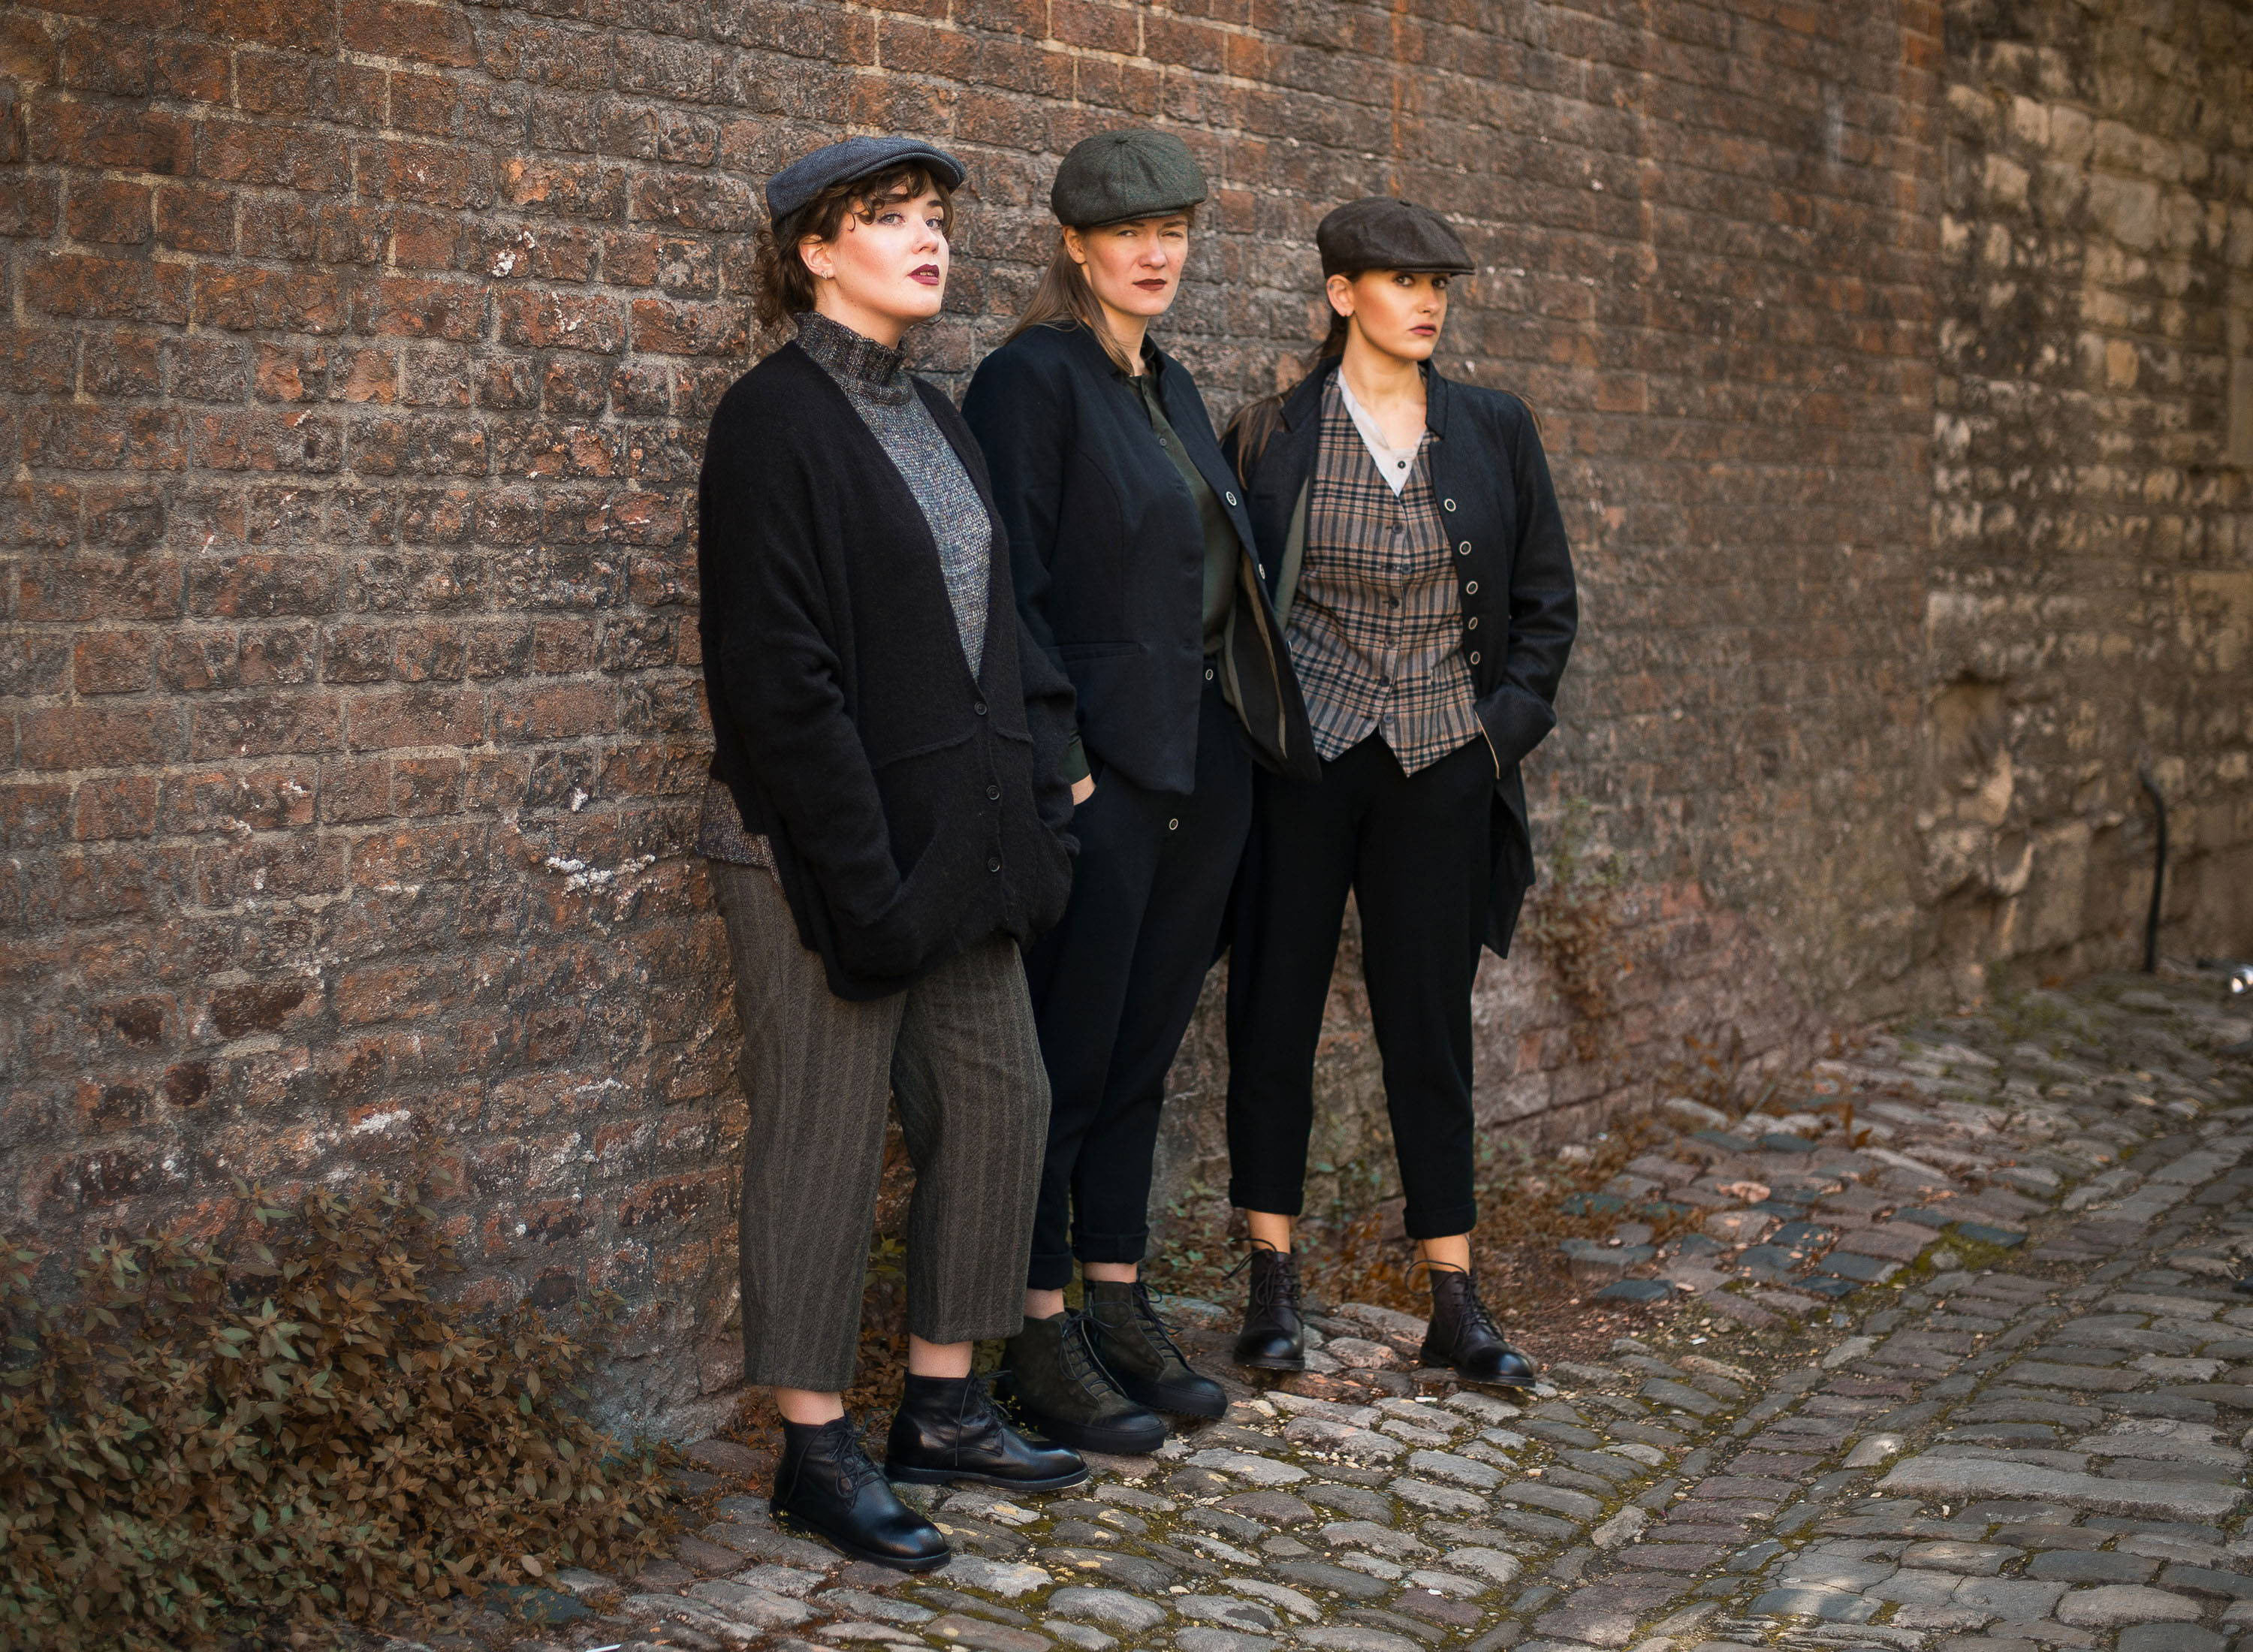 Peaky blinders style outfits shot on the cobbled streets of Oxford